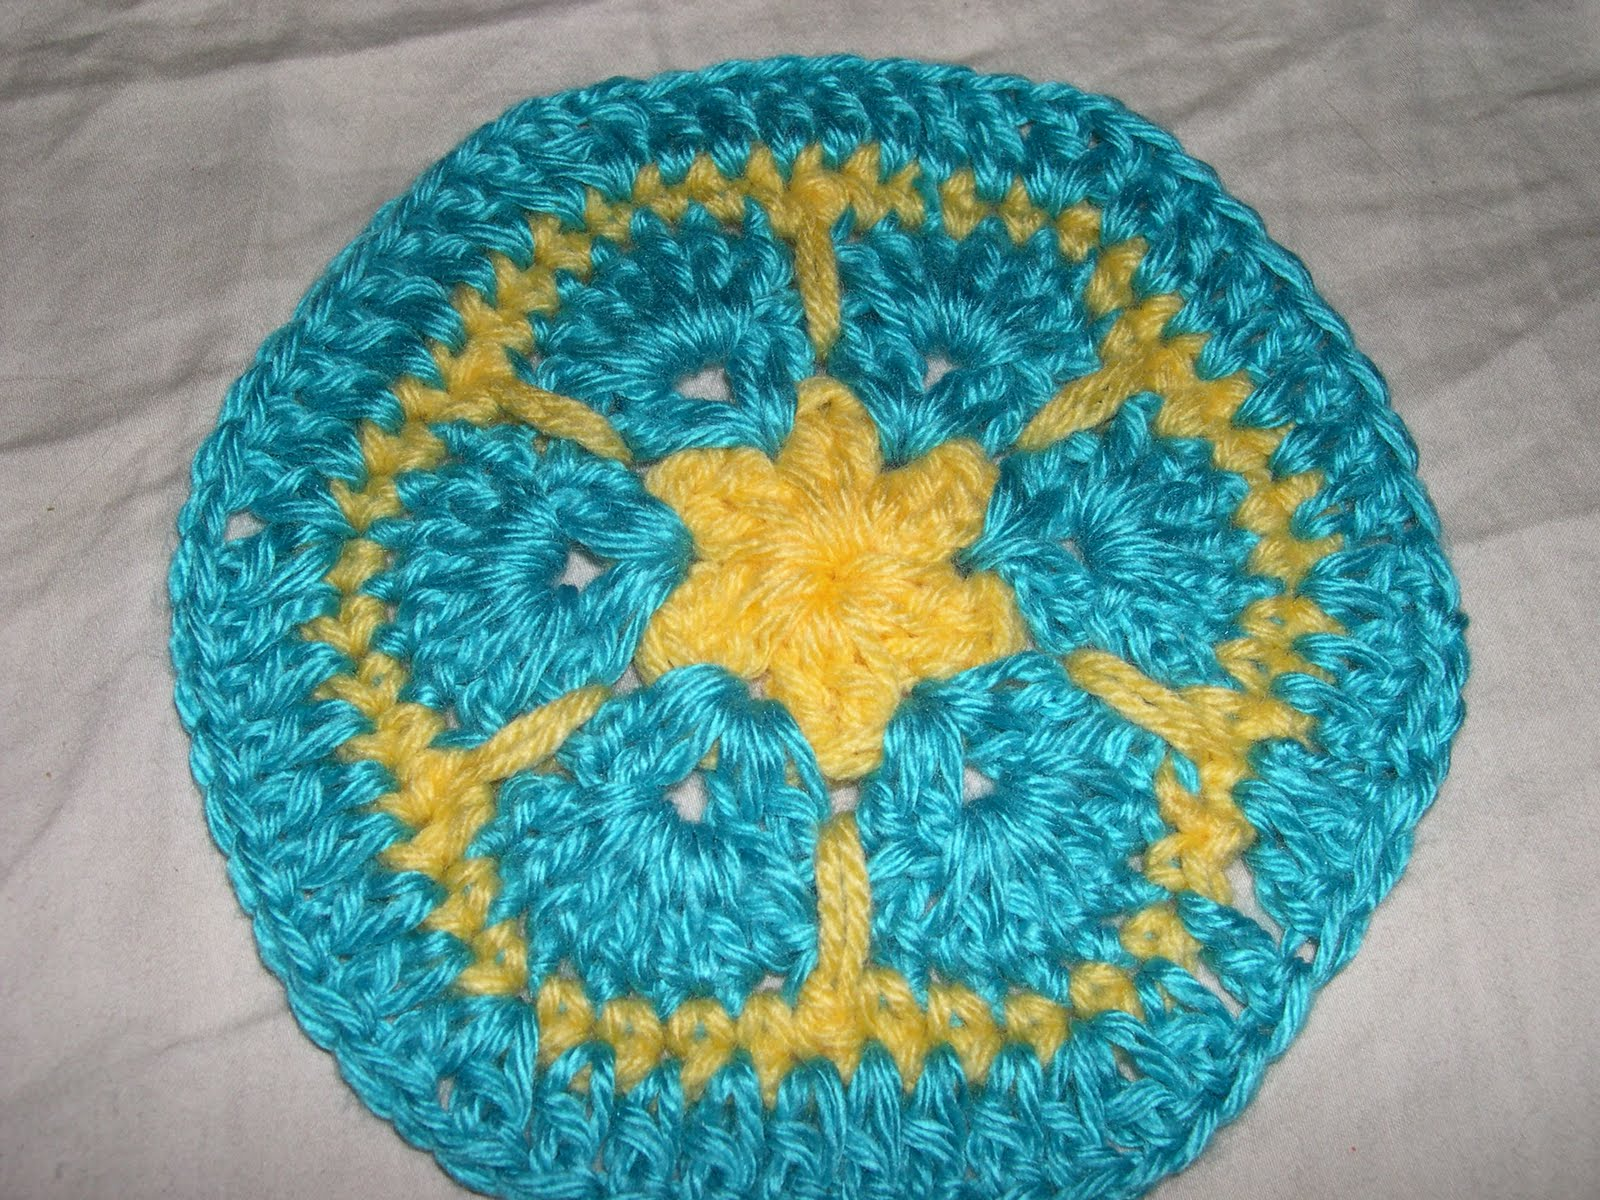 African Flower Hexagon Crochet Pattern Free : Crochet Creations By Lilly: AFRICAN FLOWER HEXAGONS